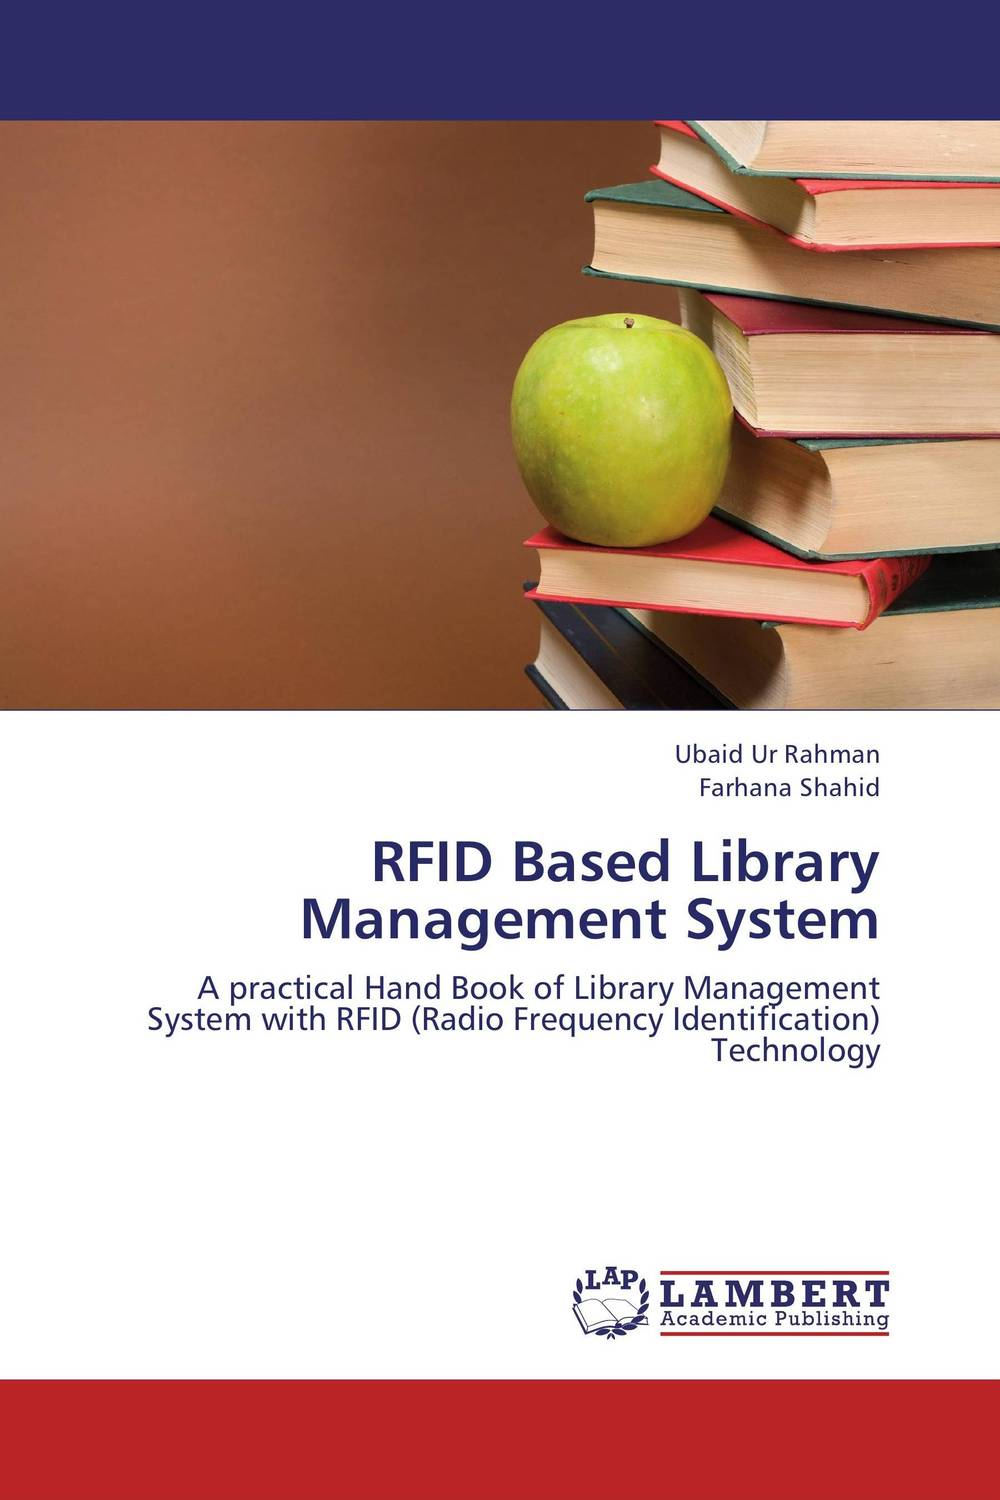 RFID Based Library Management System 125khz rs232 long range passive rfid reader support em4200 card and tk4100 card used for automated parking management system